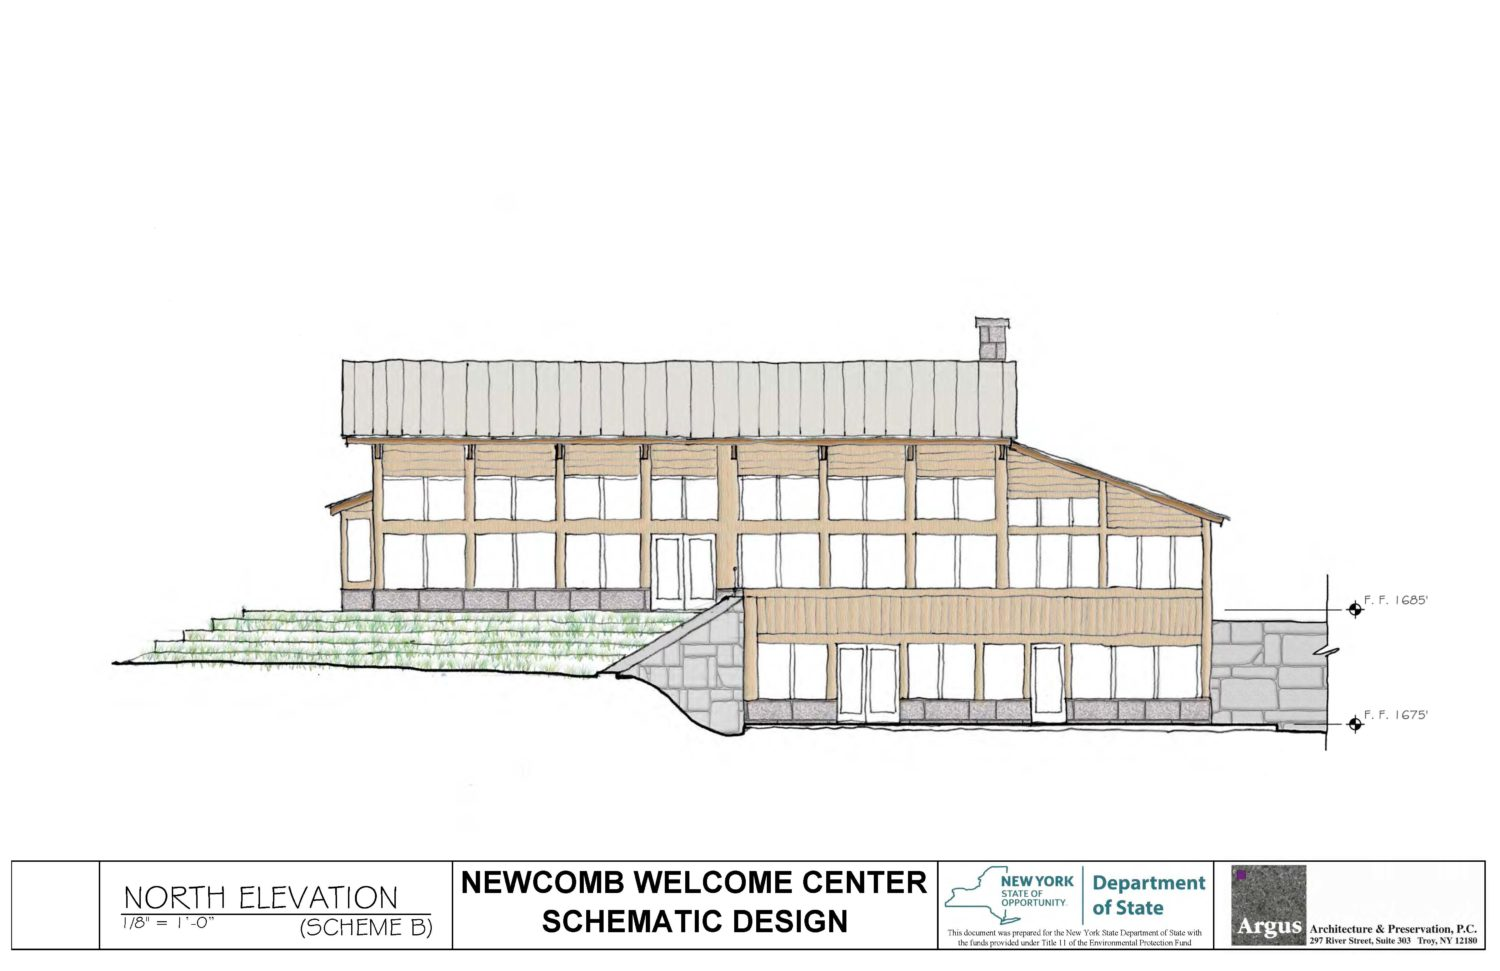 Newcomb Welcome Center